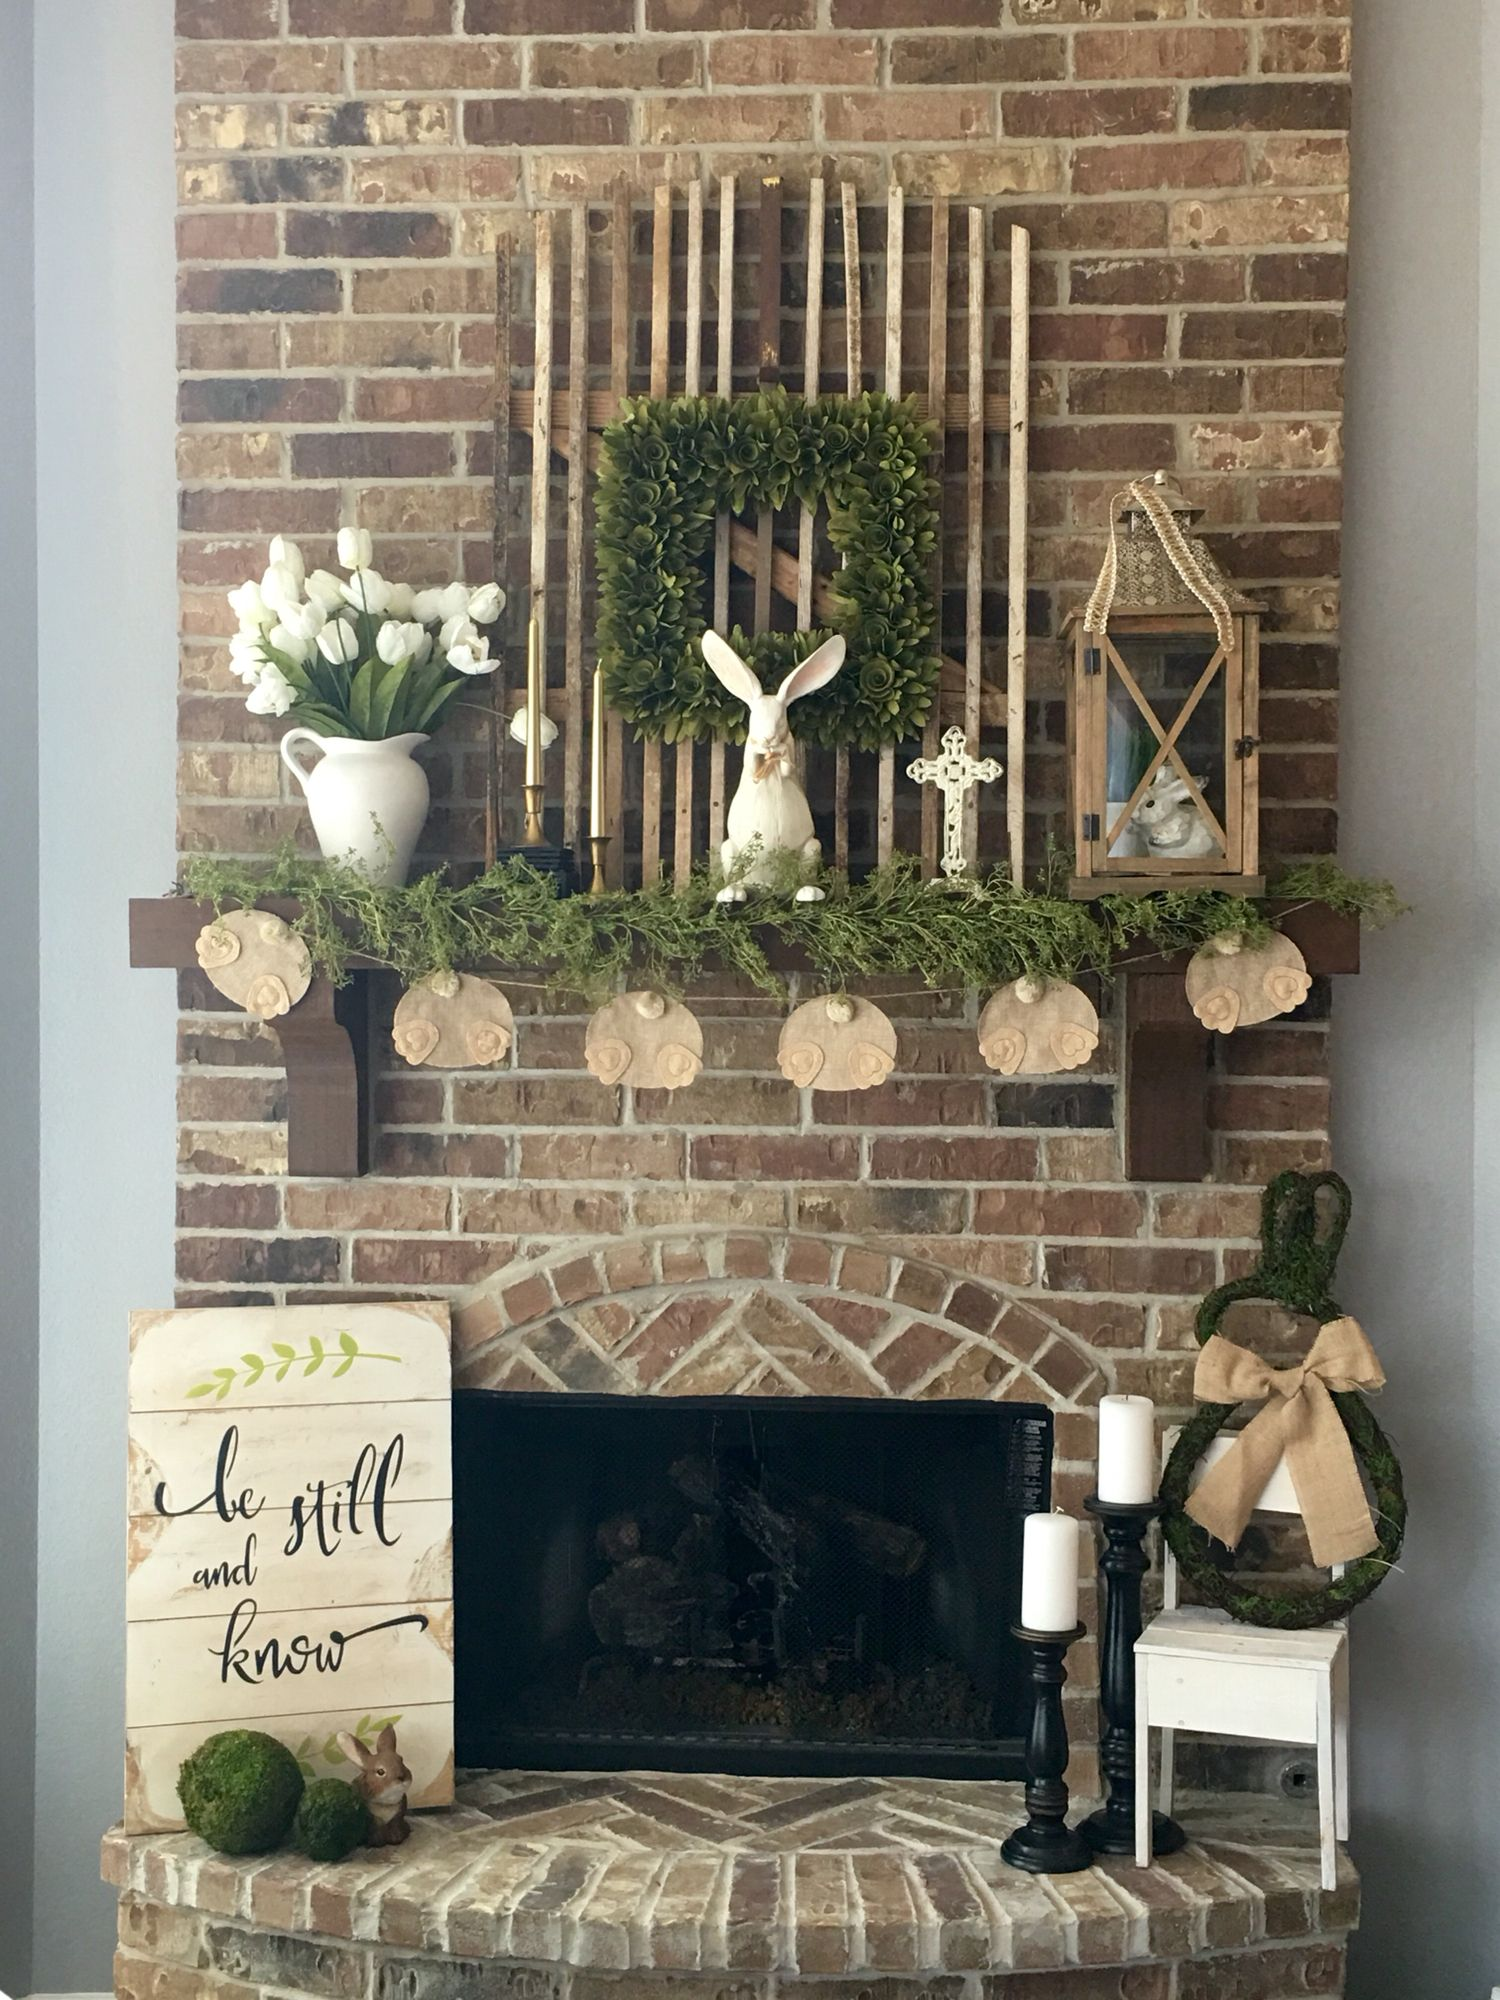 Easter Or Spring Decor Replace Bunnies For Spring Mantels And